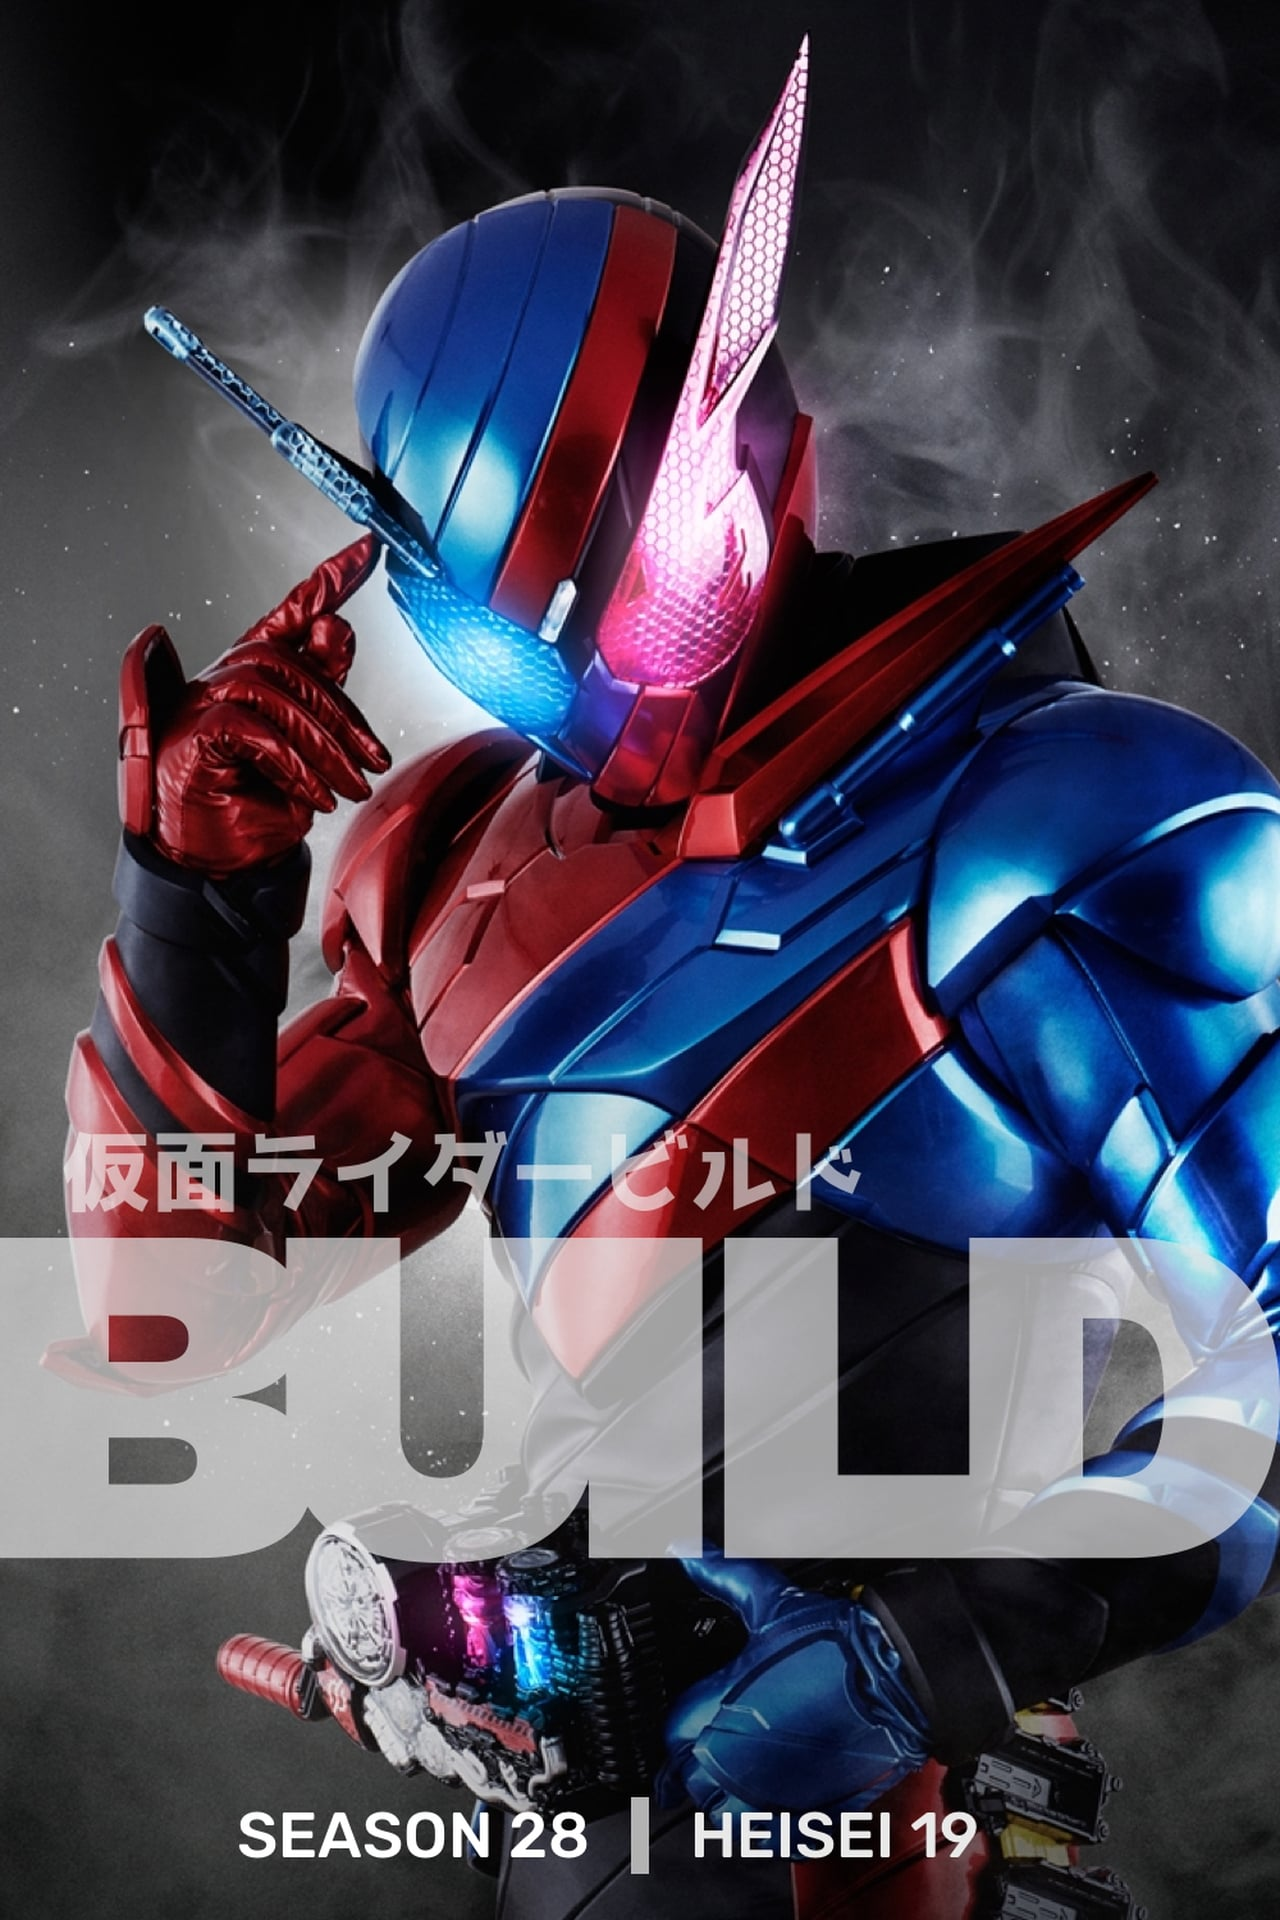 Watch Kamen Rider Season 28 Online